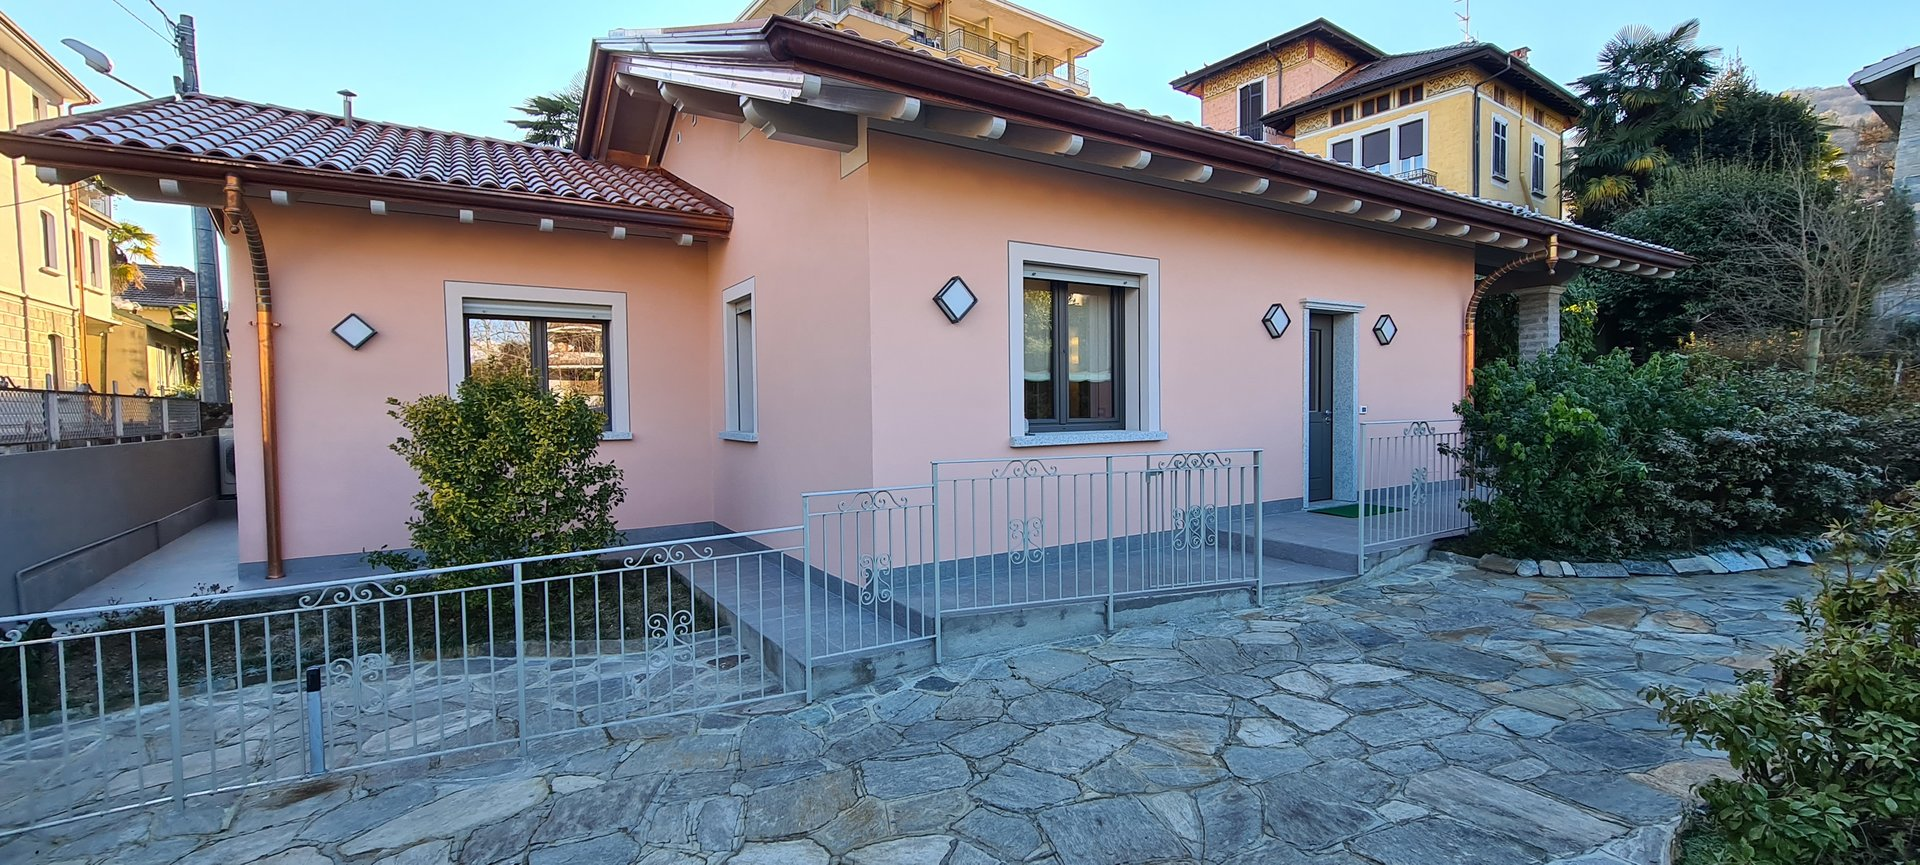 Villa for rent in Stresa, in the center